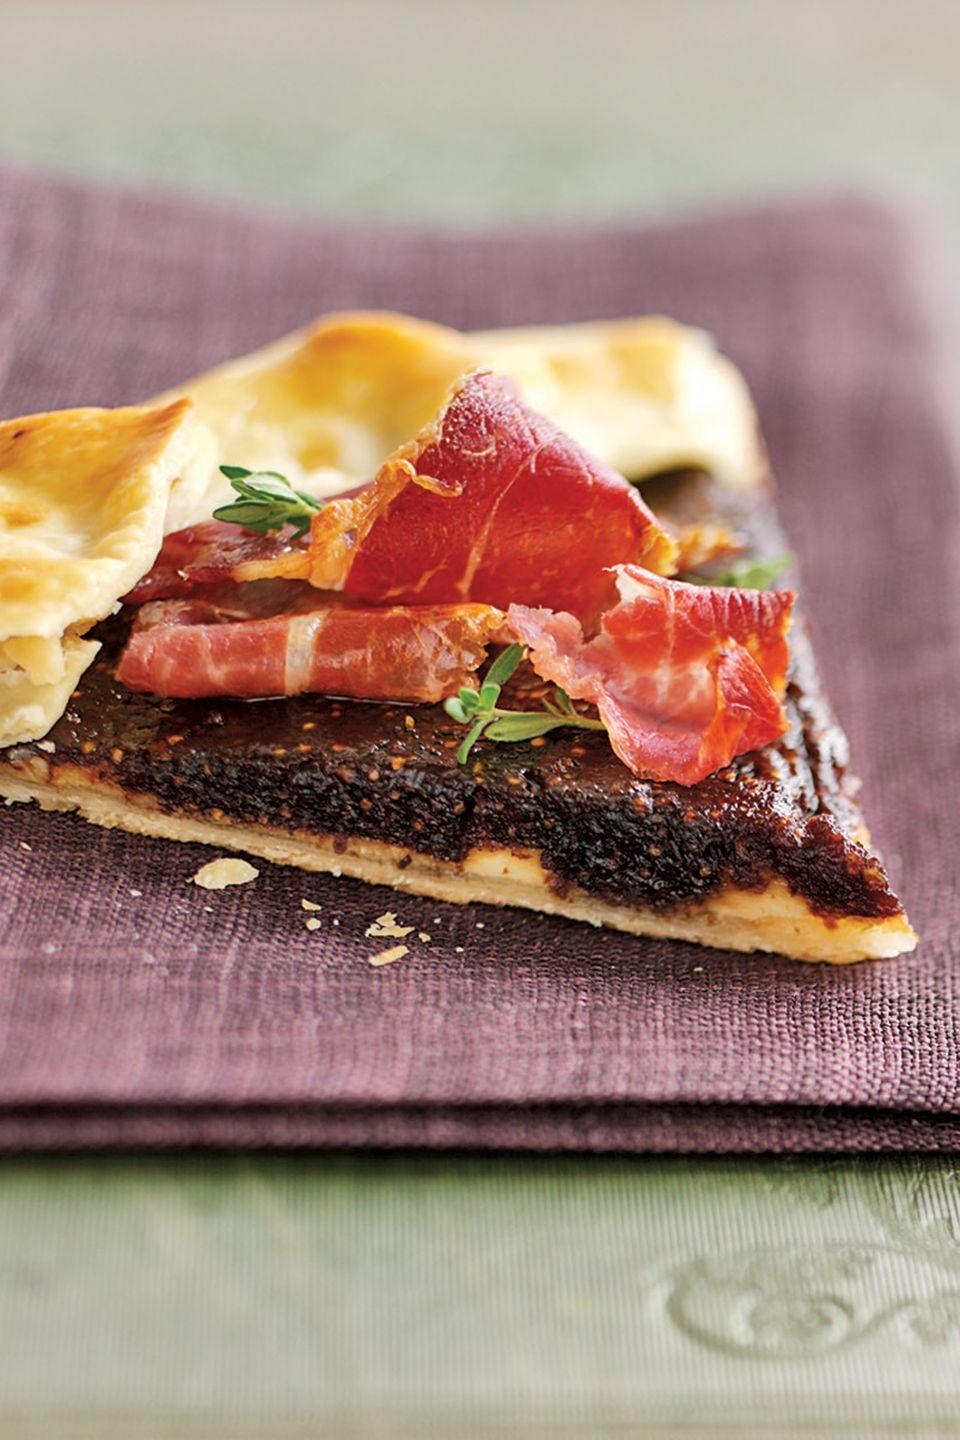 """<p>Expand your party menu with dependable staples from the pantry. Dried figs and prepared piecrust combine to make a sophisticated hors d'oeuvre. </p><p><strong><a href=""""https://www.countryliving.com/food-drinks/recipes/a1741/prosciutto-fig-crostata-3864/"""" rel=""""nofollow noopener"""" target=""""_blank"""" data-ylk=""""slk:Get the recipe"""" class=""""link rapid-noclick-resp"""">Get the recipe</a>.</strong></p>"""